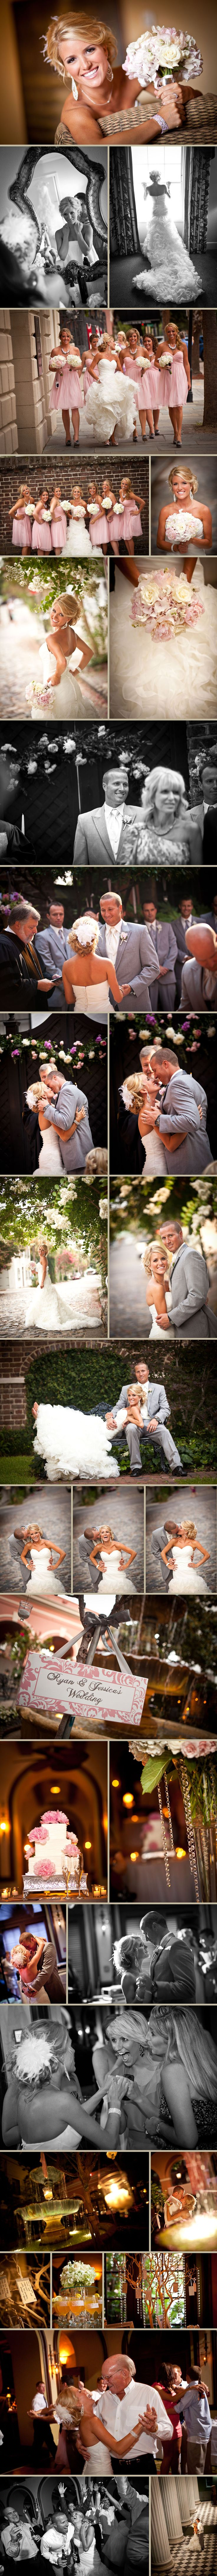 Wedding picture ideas.  Also, I love the photography.